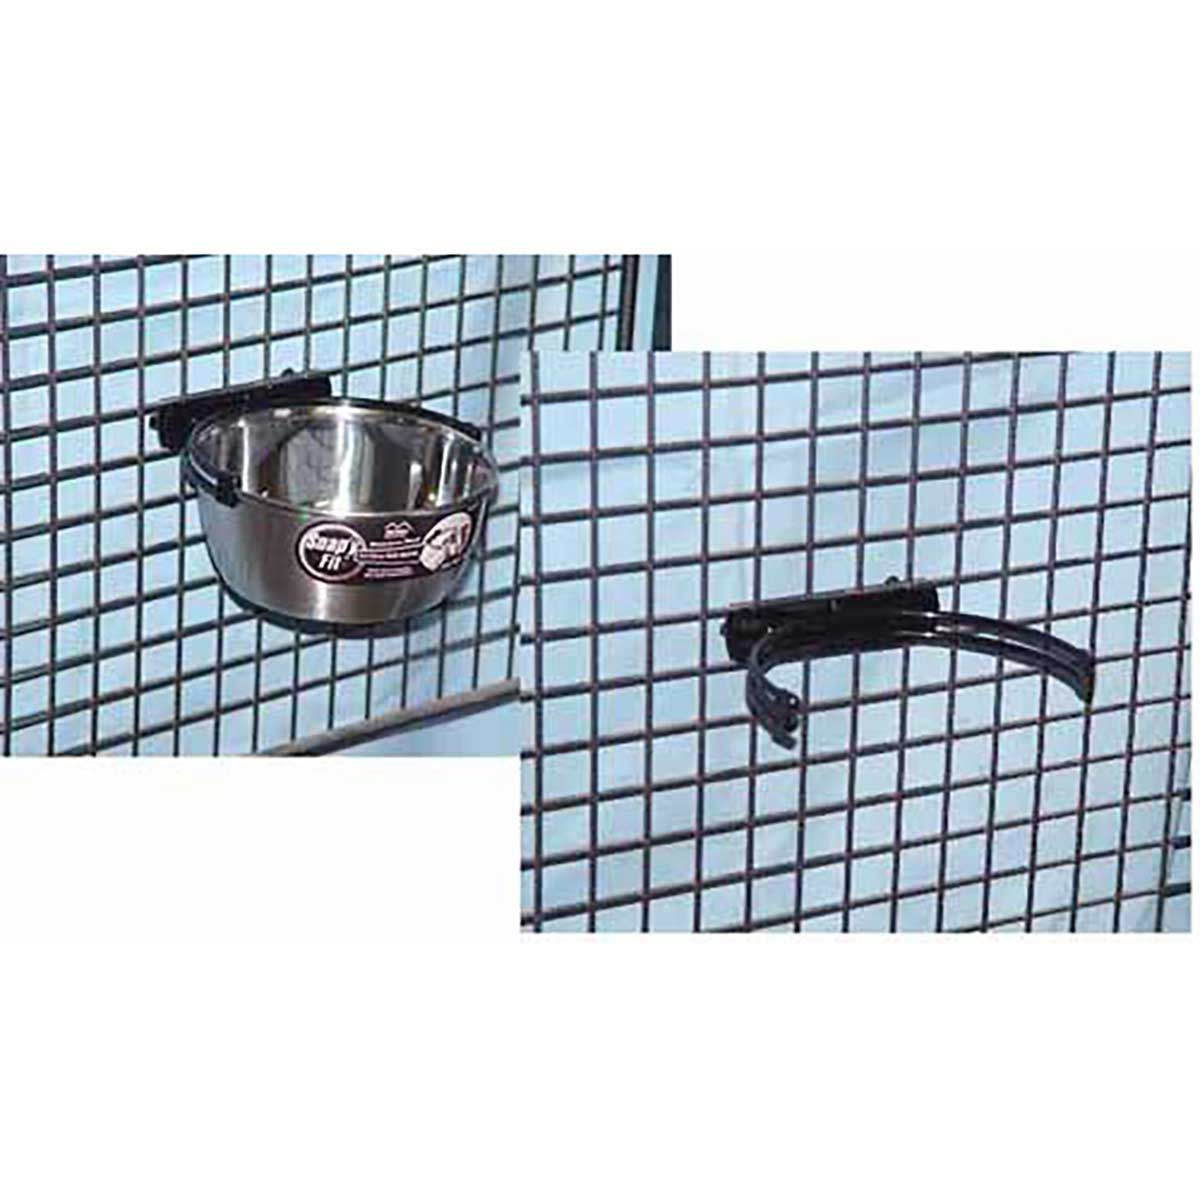 Snap'y Fit 10 oz Coop Cup for Dog Crates